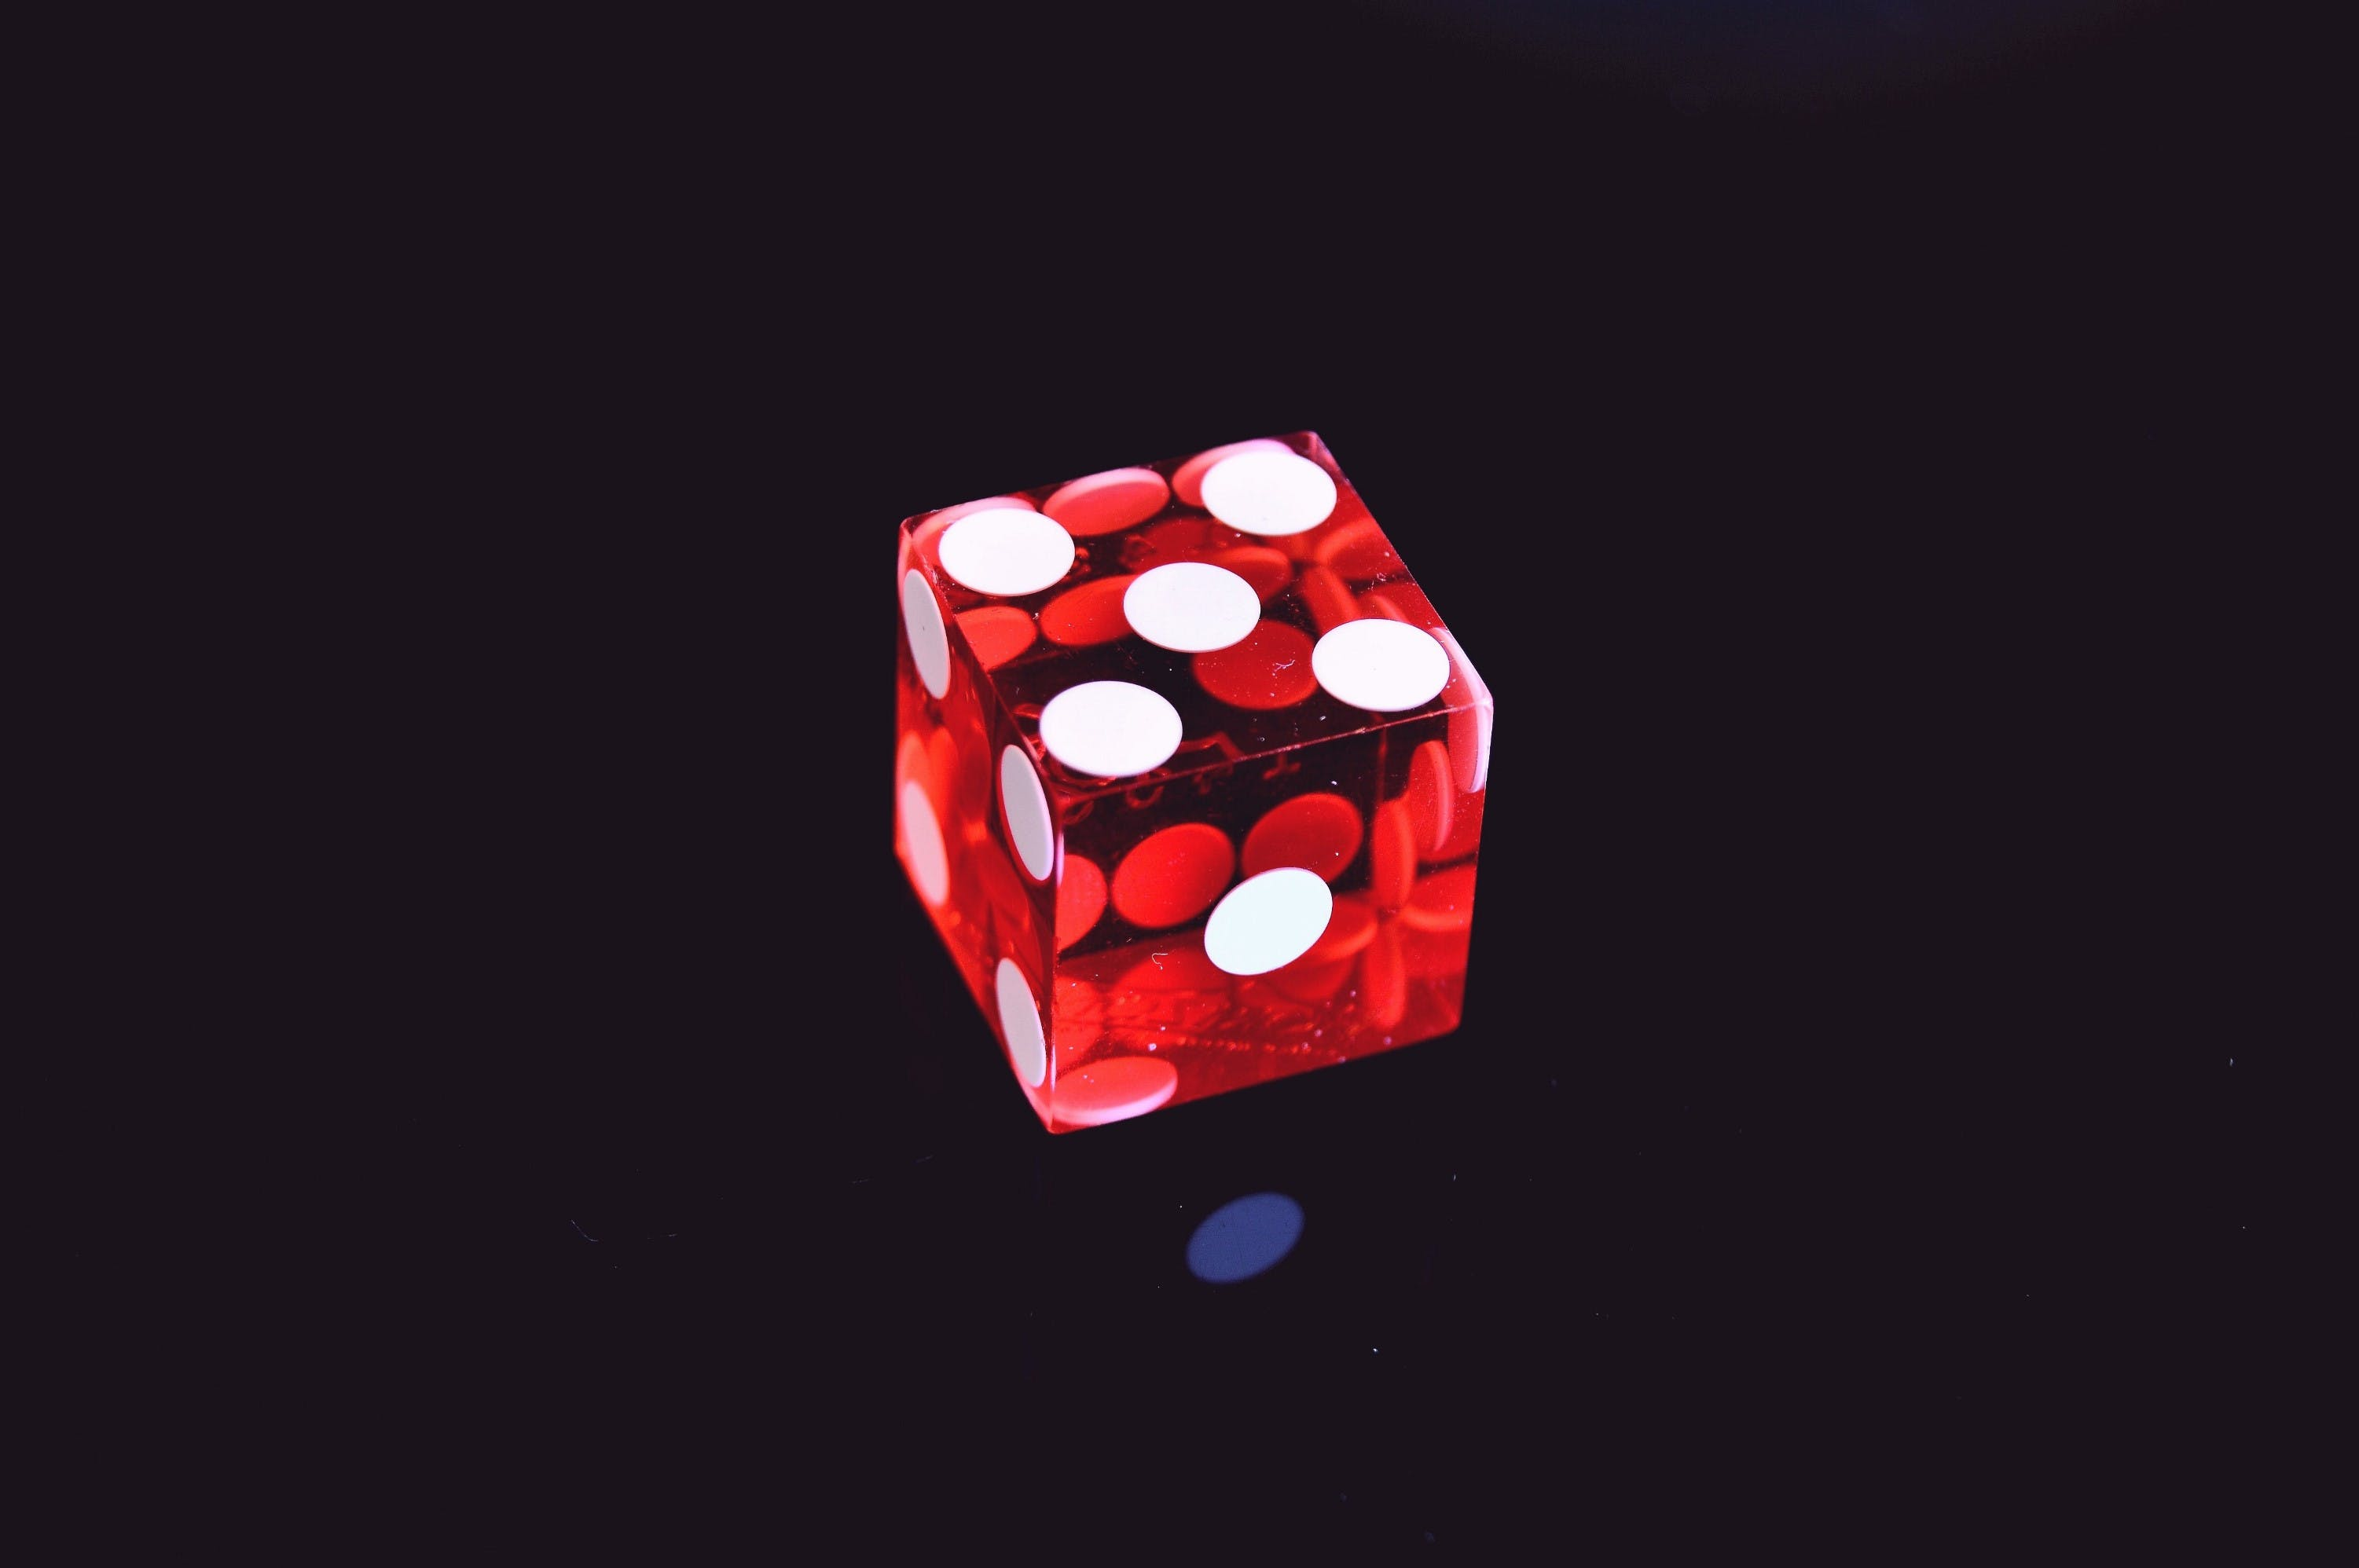 Red Translucent Die on Top of Black Surface